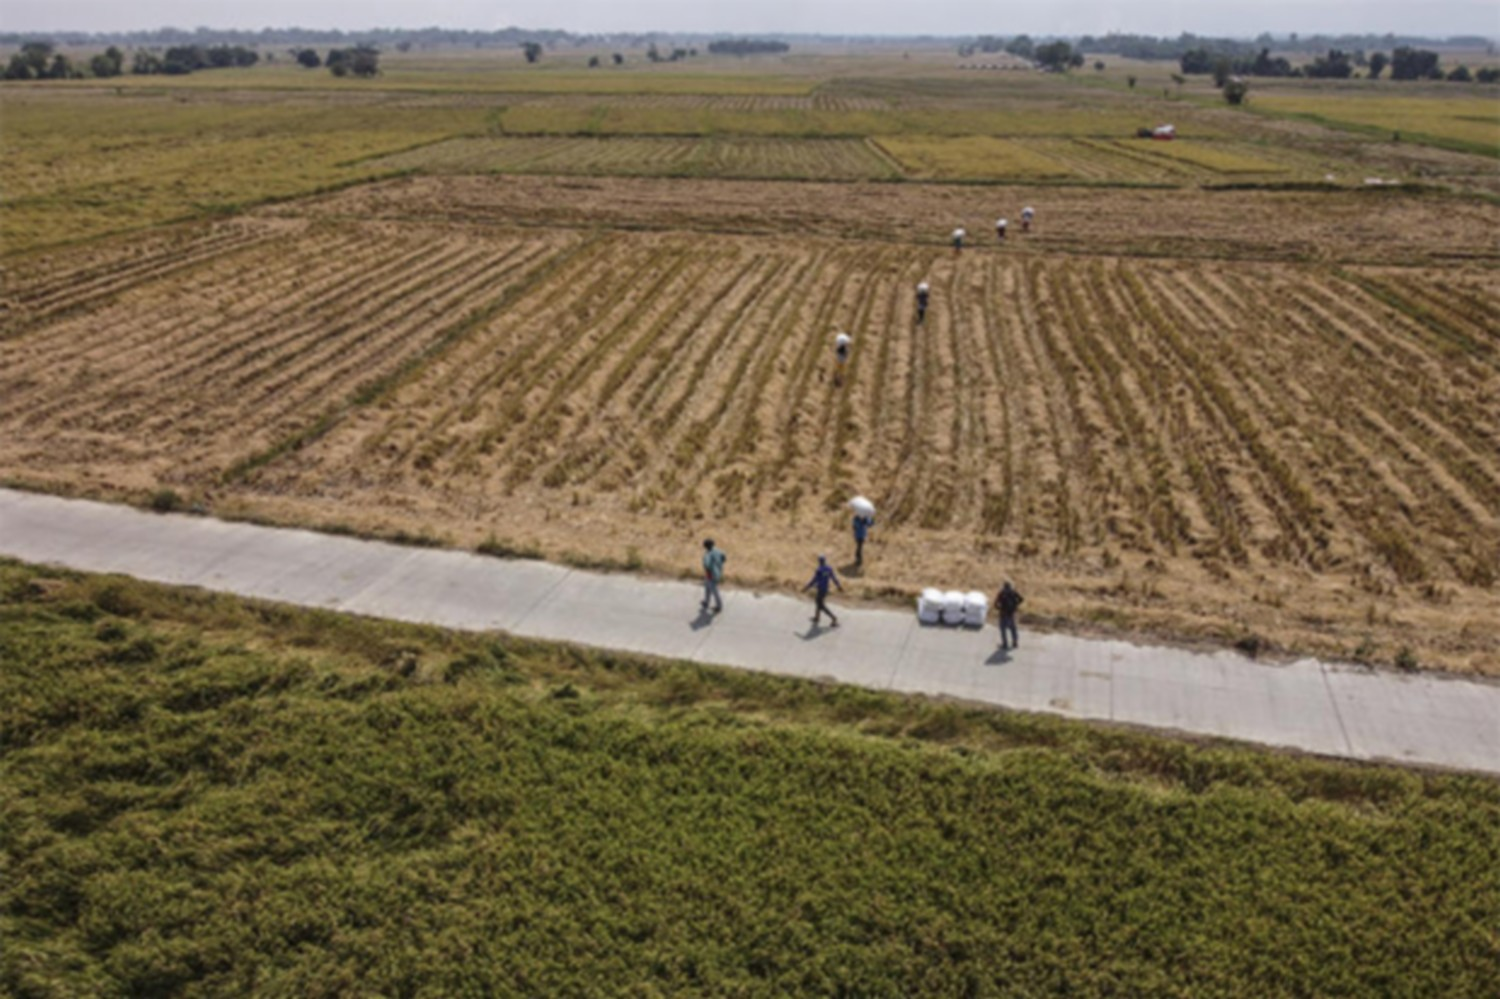 Farmers carry sacks of harvested rice through a paddy field in this aerial photograph taken in San Leonardo, Nueva Ecija, the Philippines, on Thursday. (Bloomberg photo)